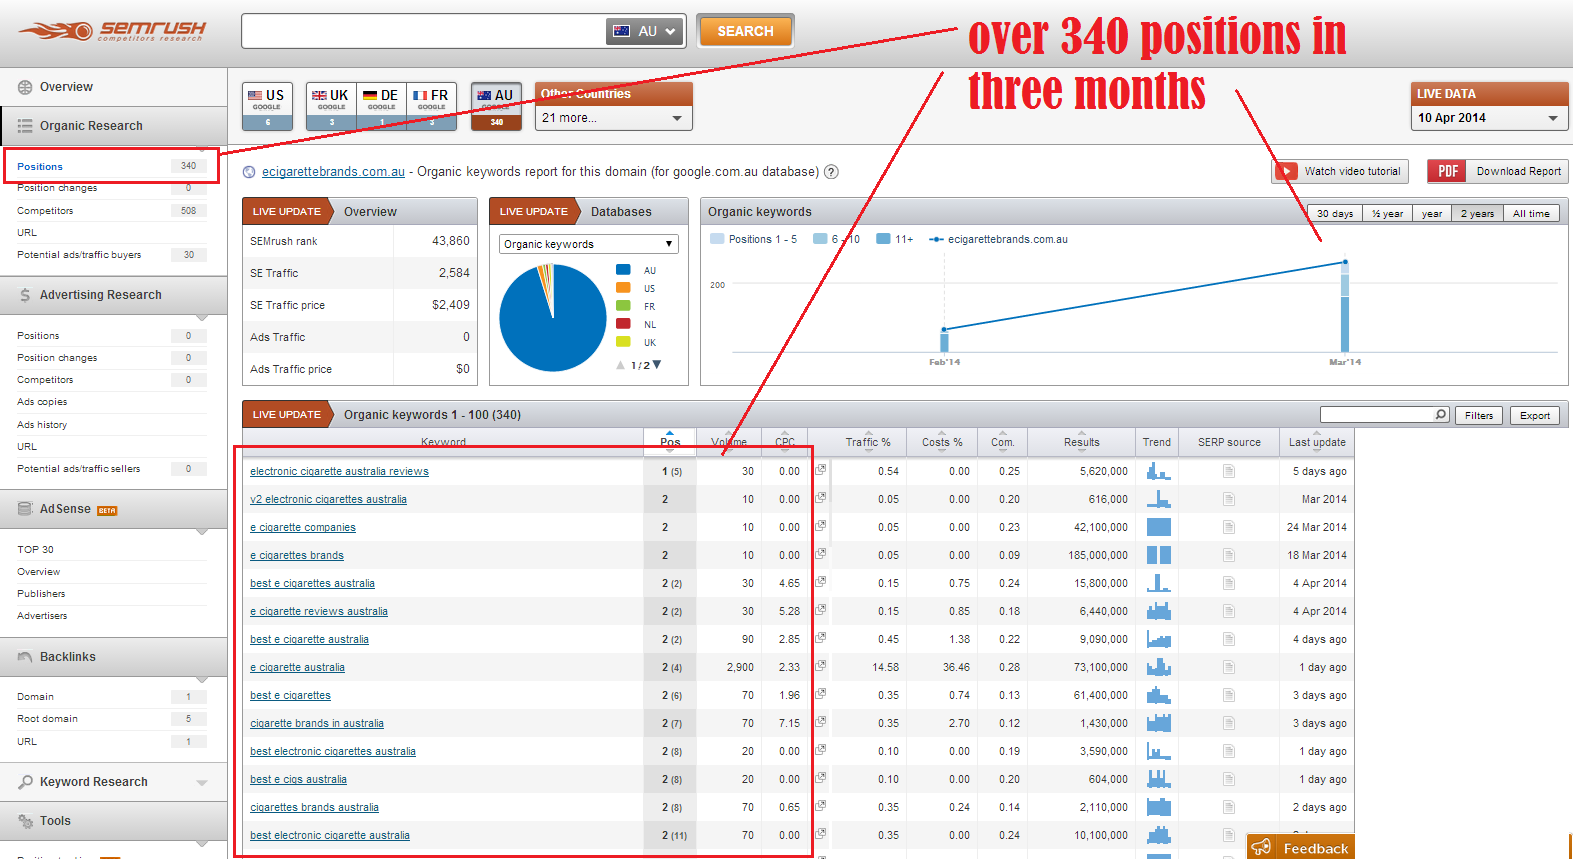 semrush ranking over 340 keywords in 3 monthsv2